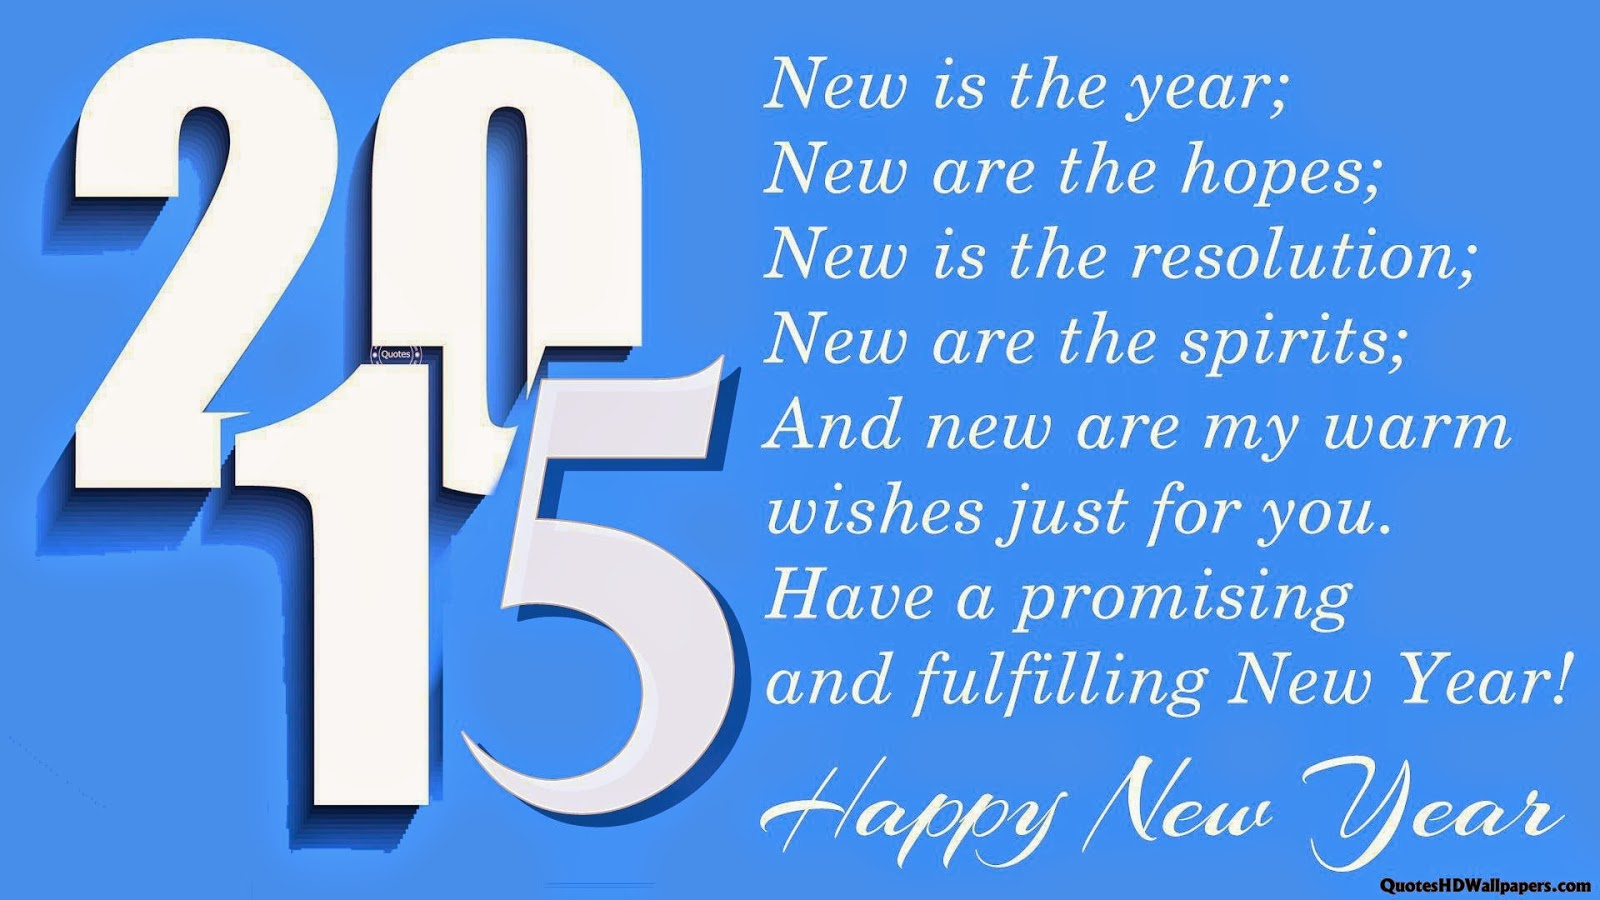 Downloads happy new year selol ink downloads happy new year colorful new year 2016 greeting m4hsunfo